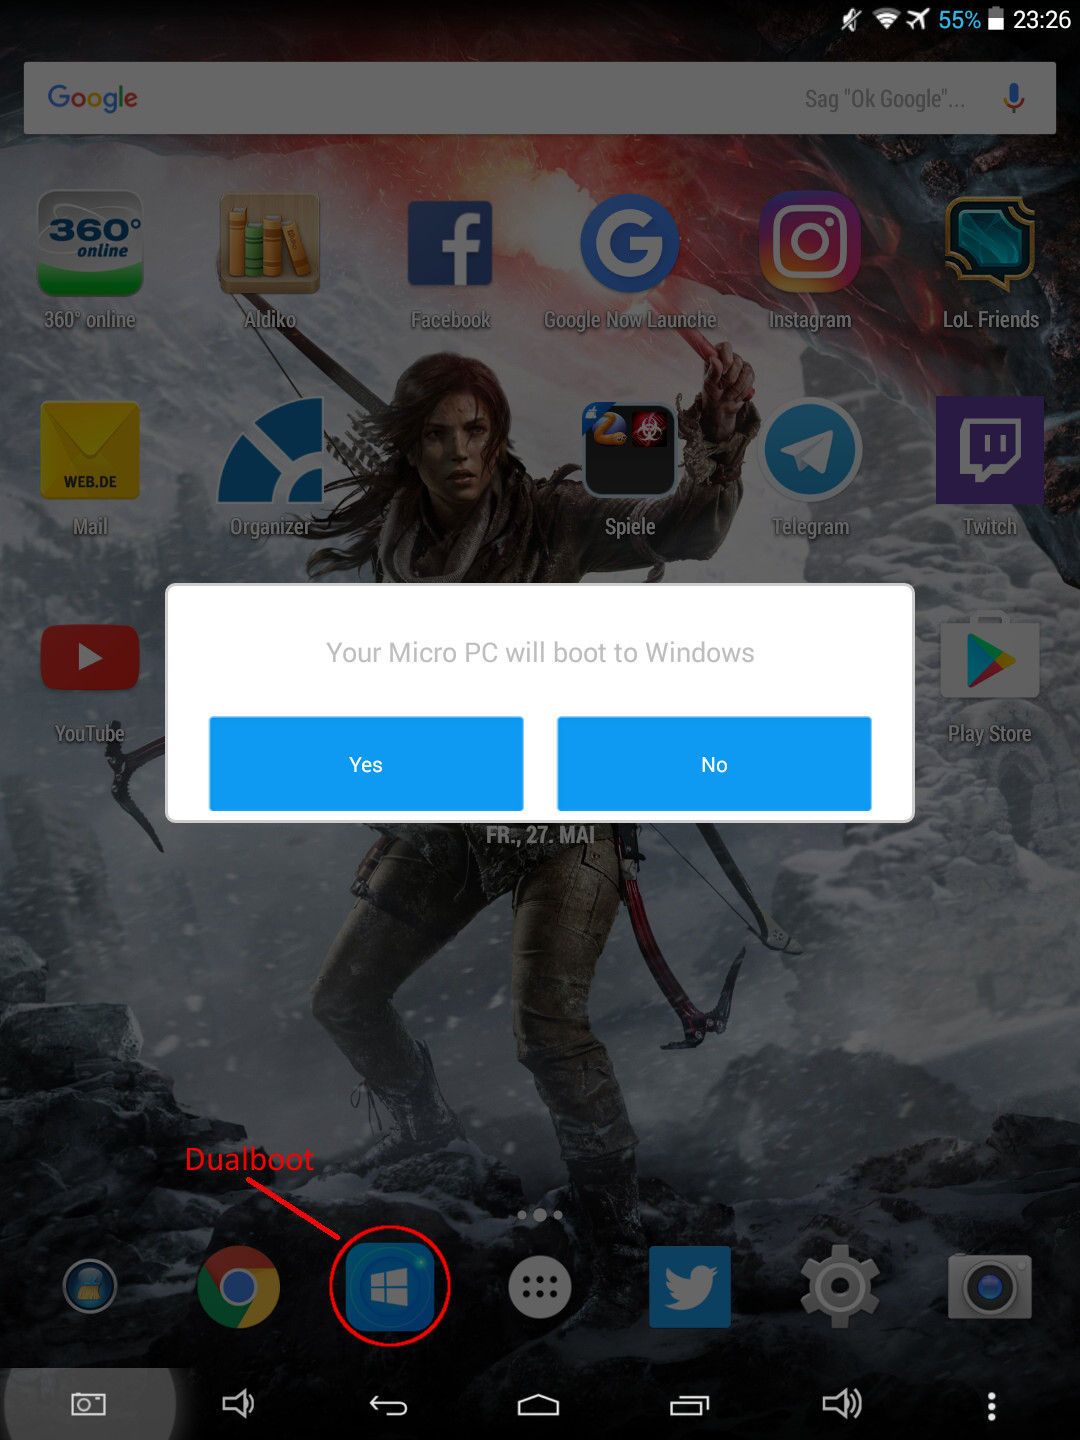 Dualboot Android - Windows